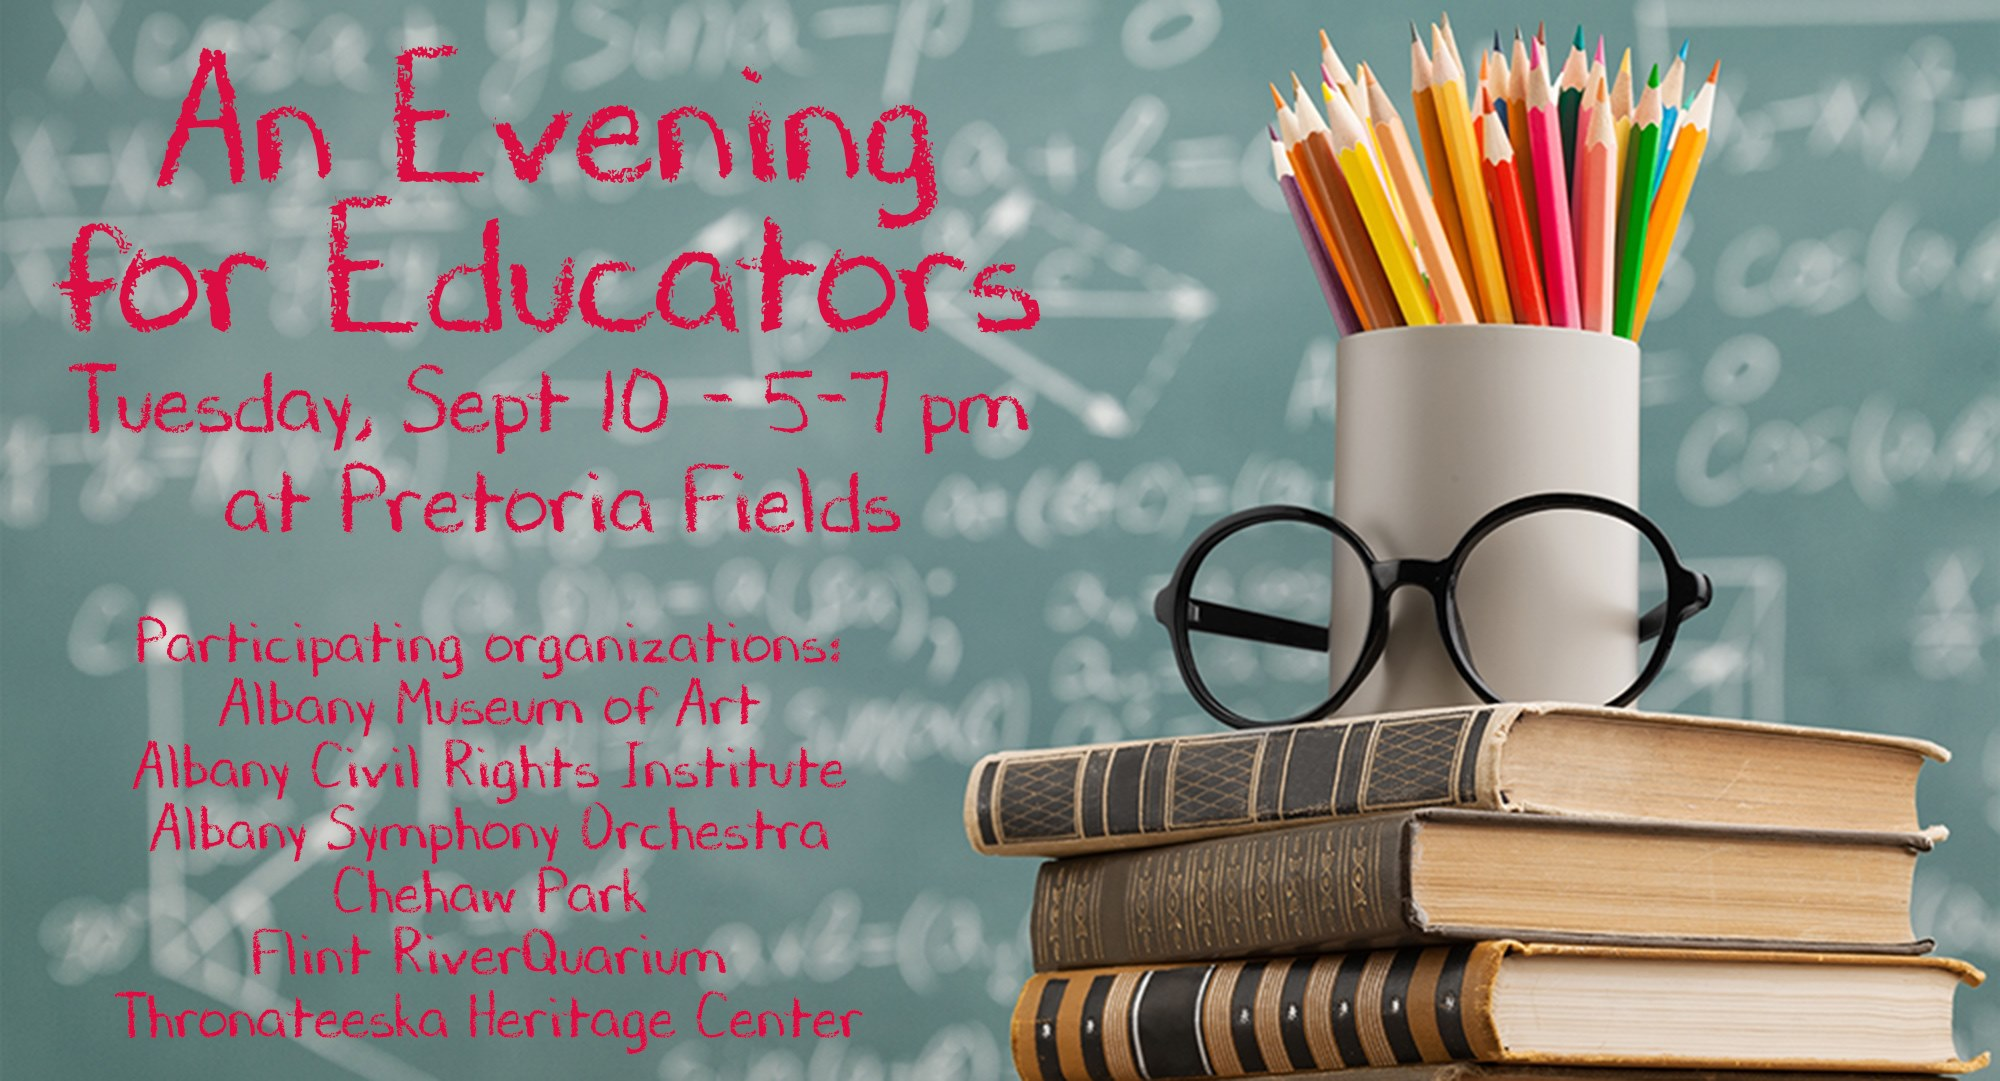 An Evening for Educators